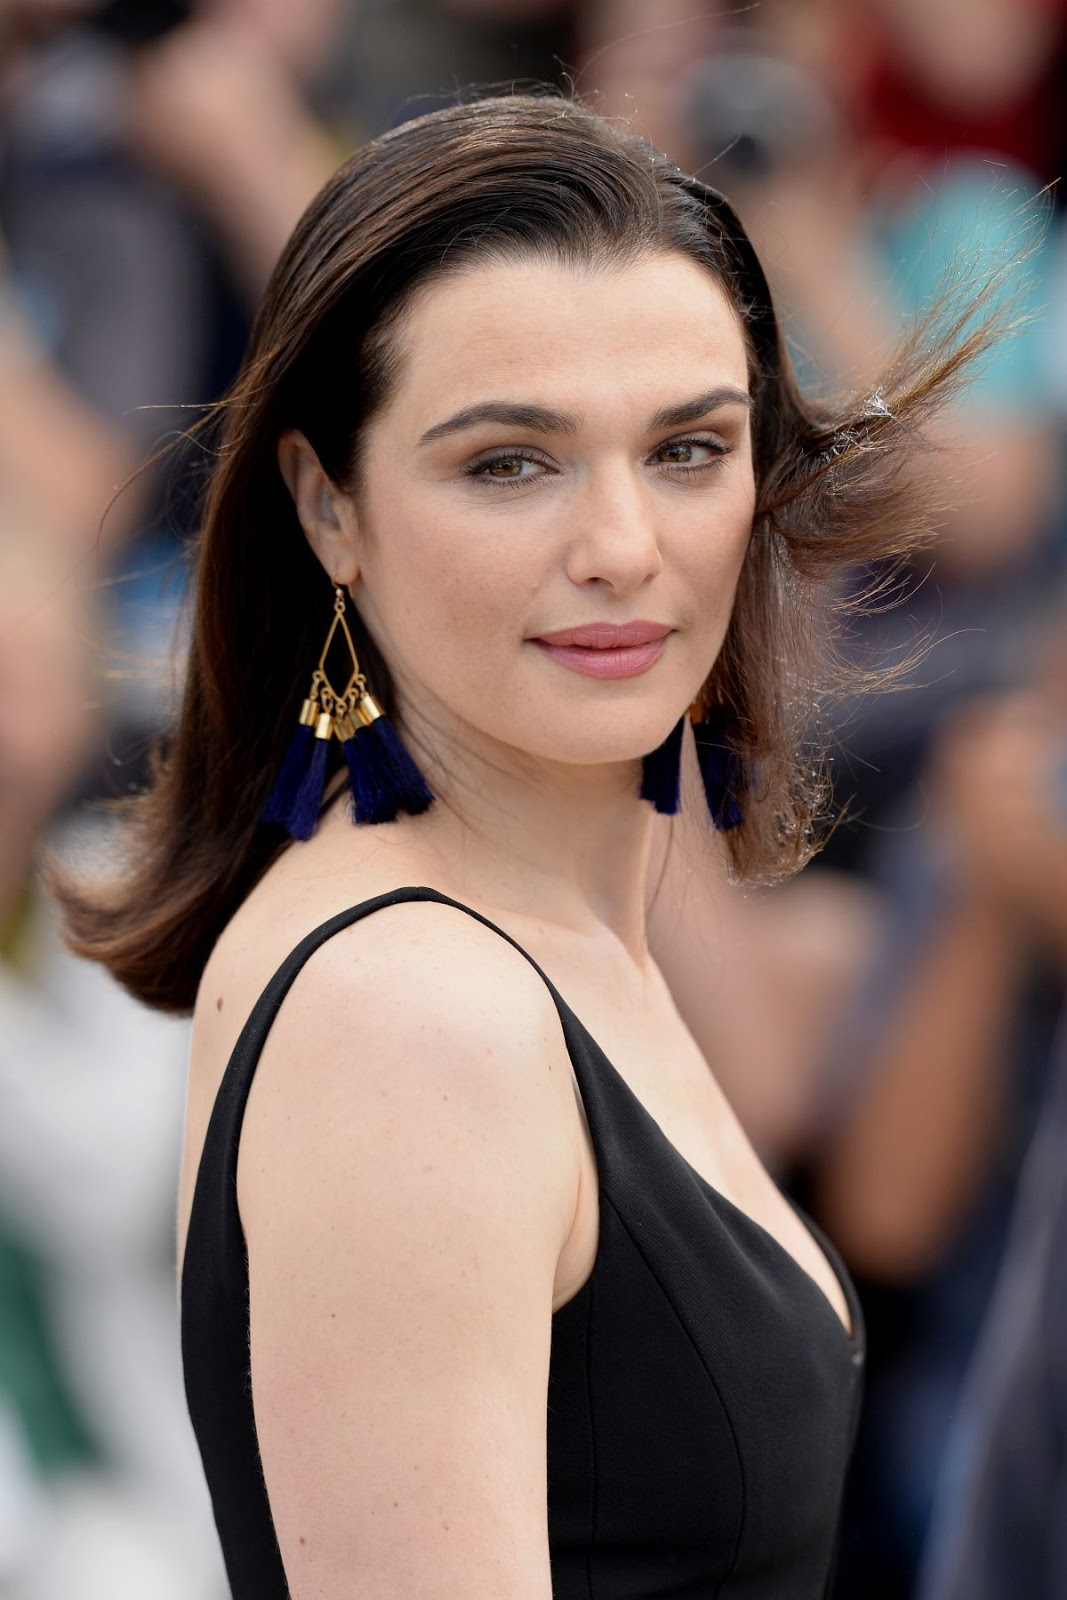 Rachel Weisz - Youth Press Conference Portraits in Los